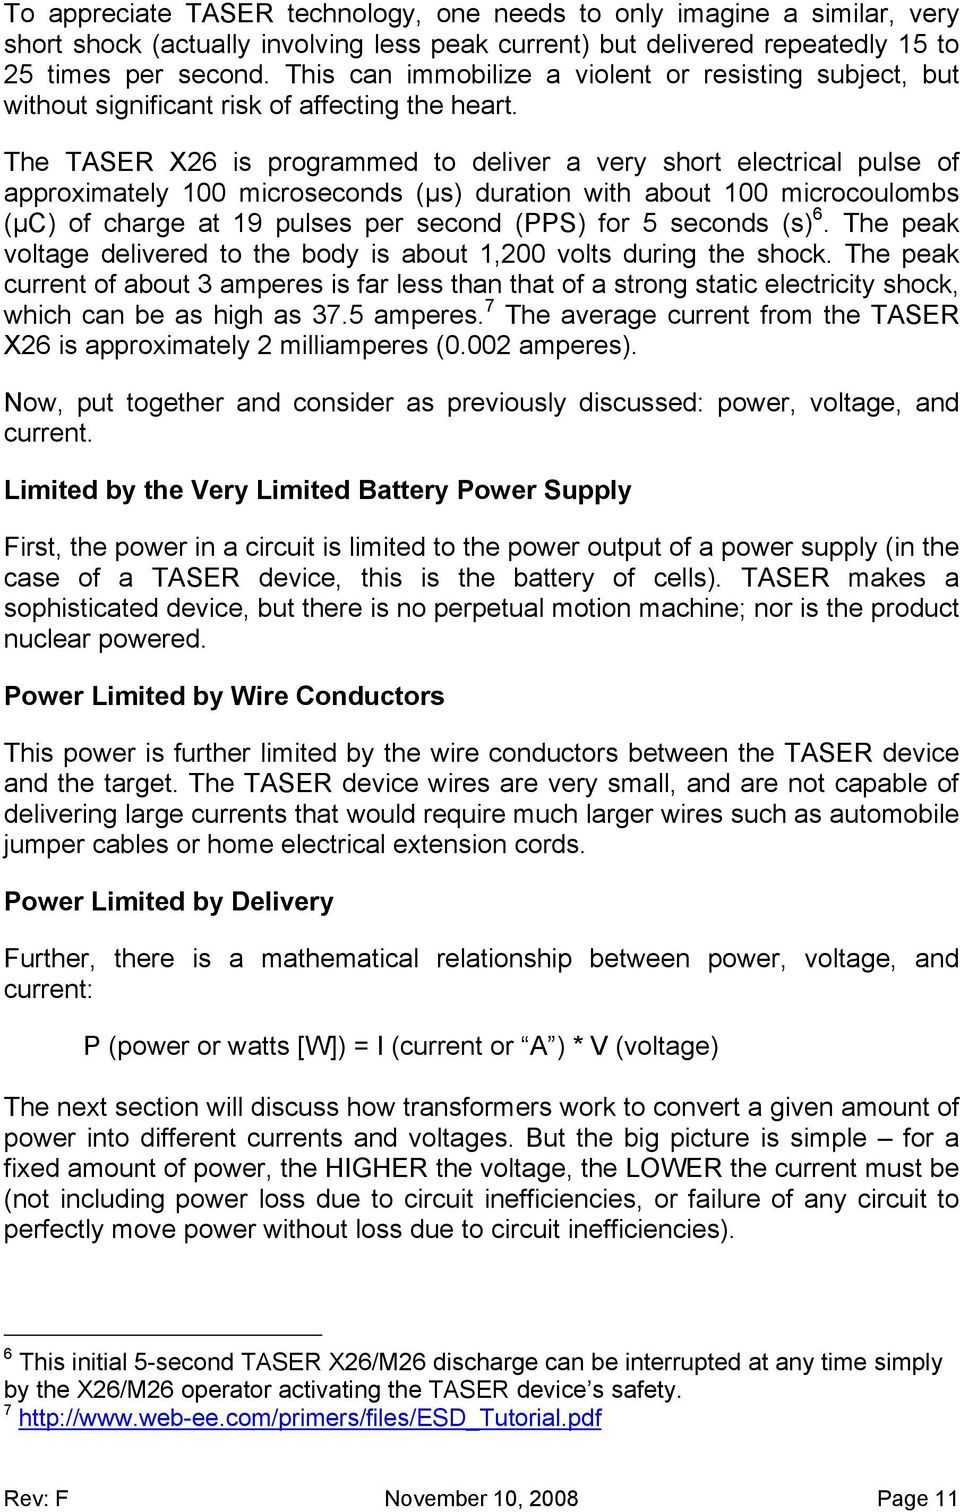 An Introduction To Taser Electronic Control Devices History Stun Gun Schematic Diagram As Well Emp Pulse Generator The X26 Is Programmed Deliver A Very Short Electrical Of Approximately 100 Microseconds